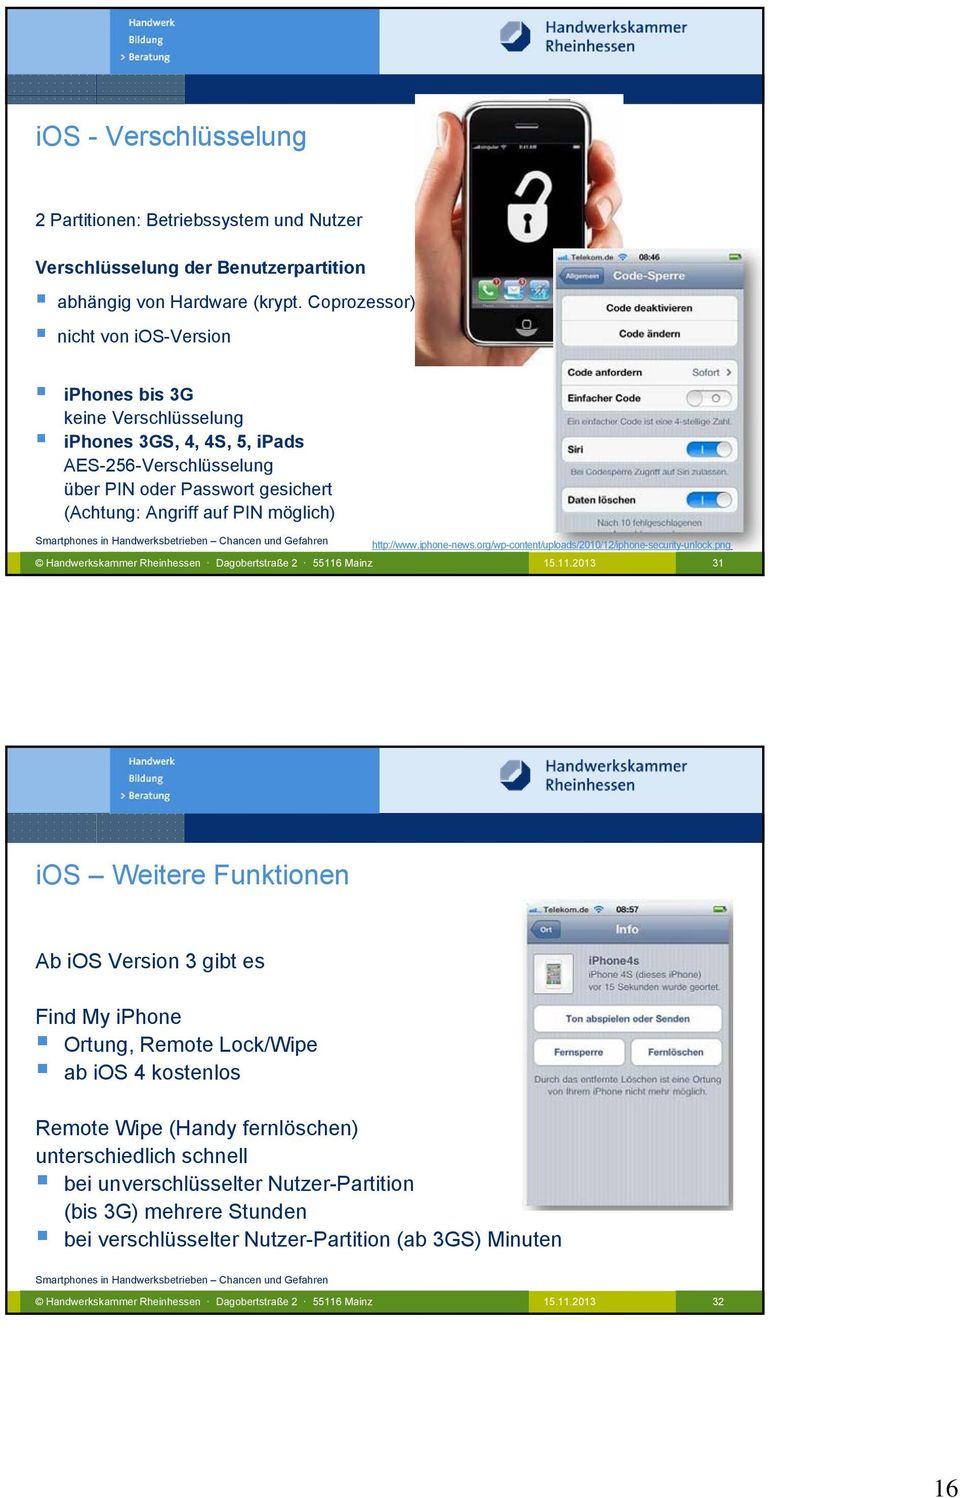 Angriff auf PIN möglich) http://www.iphone-news.org/wp-content/uploads/2010/12/iphone-security-unlock.